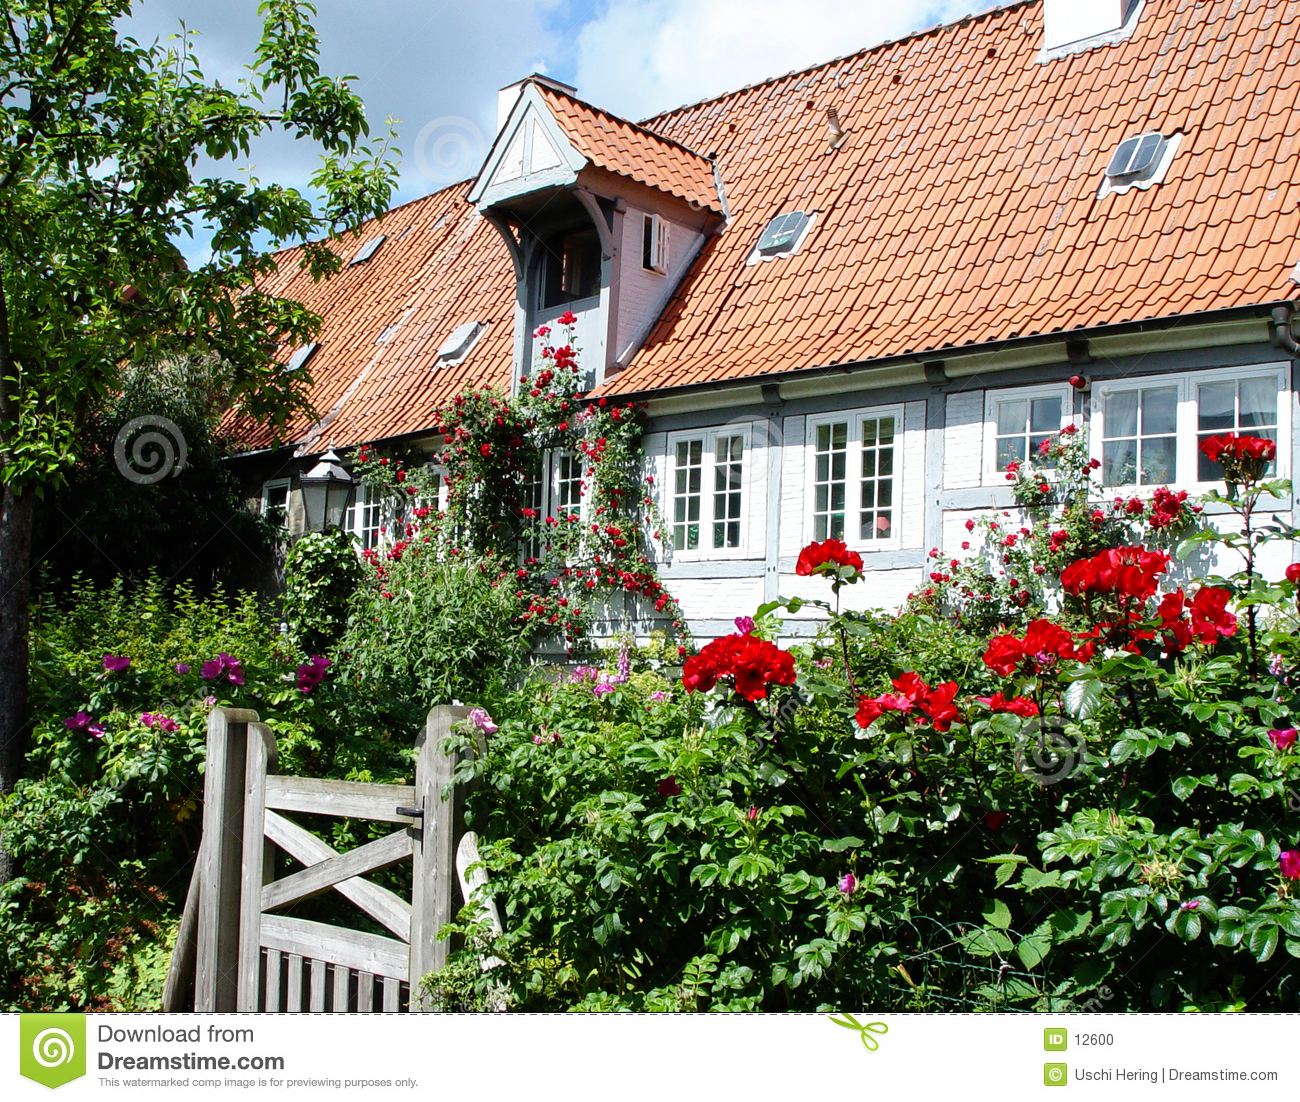 House with flower landscaping